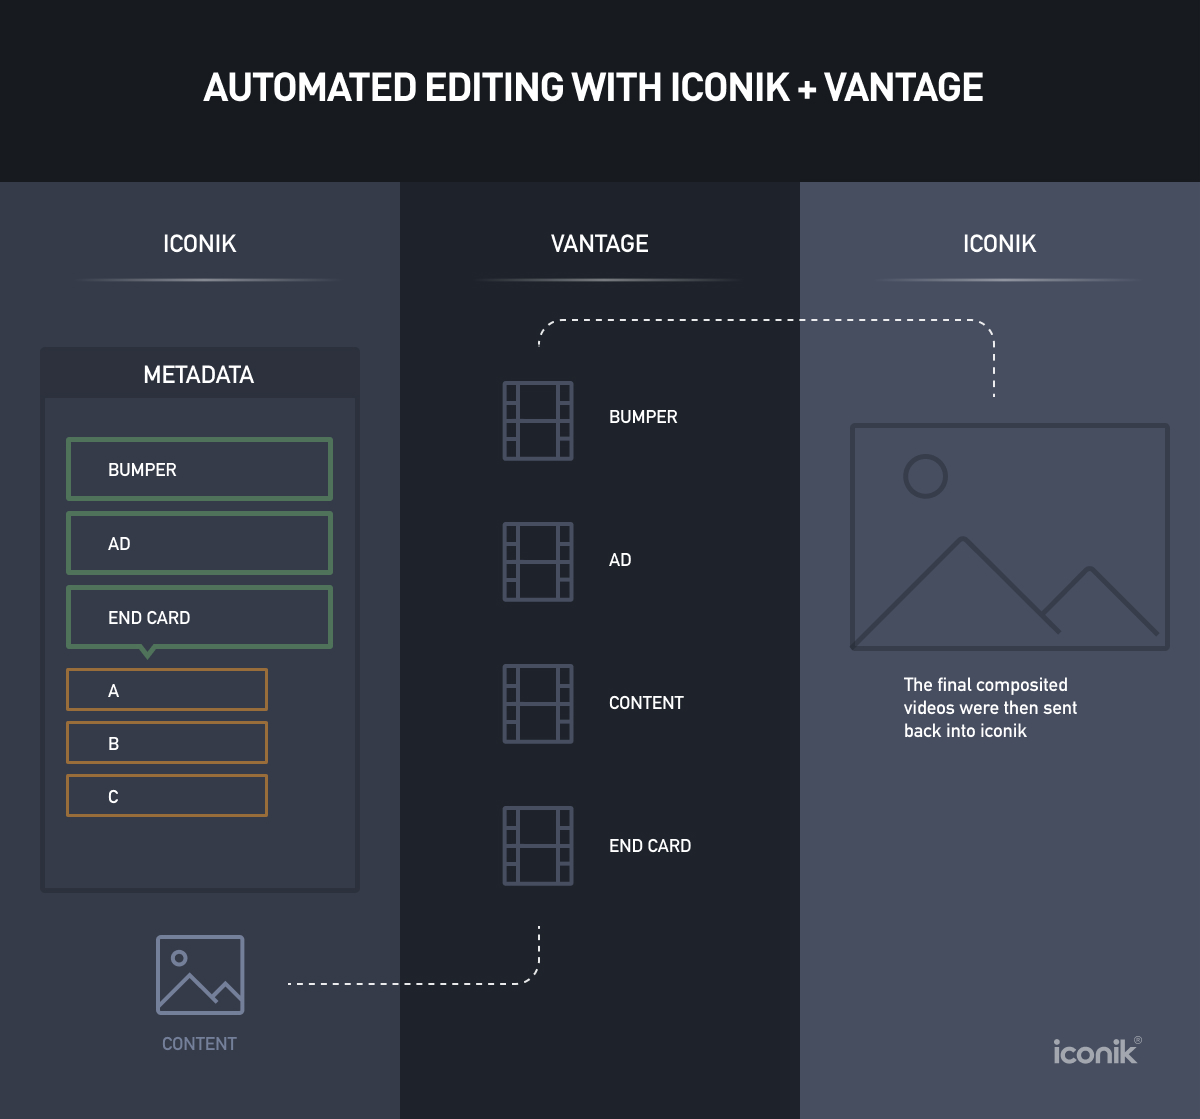 Vantage and iconik integration for automated video editing